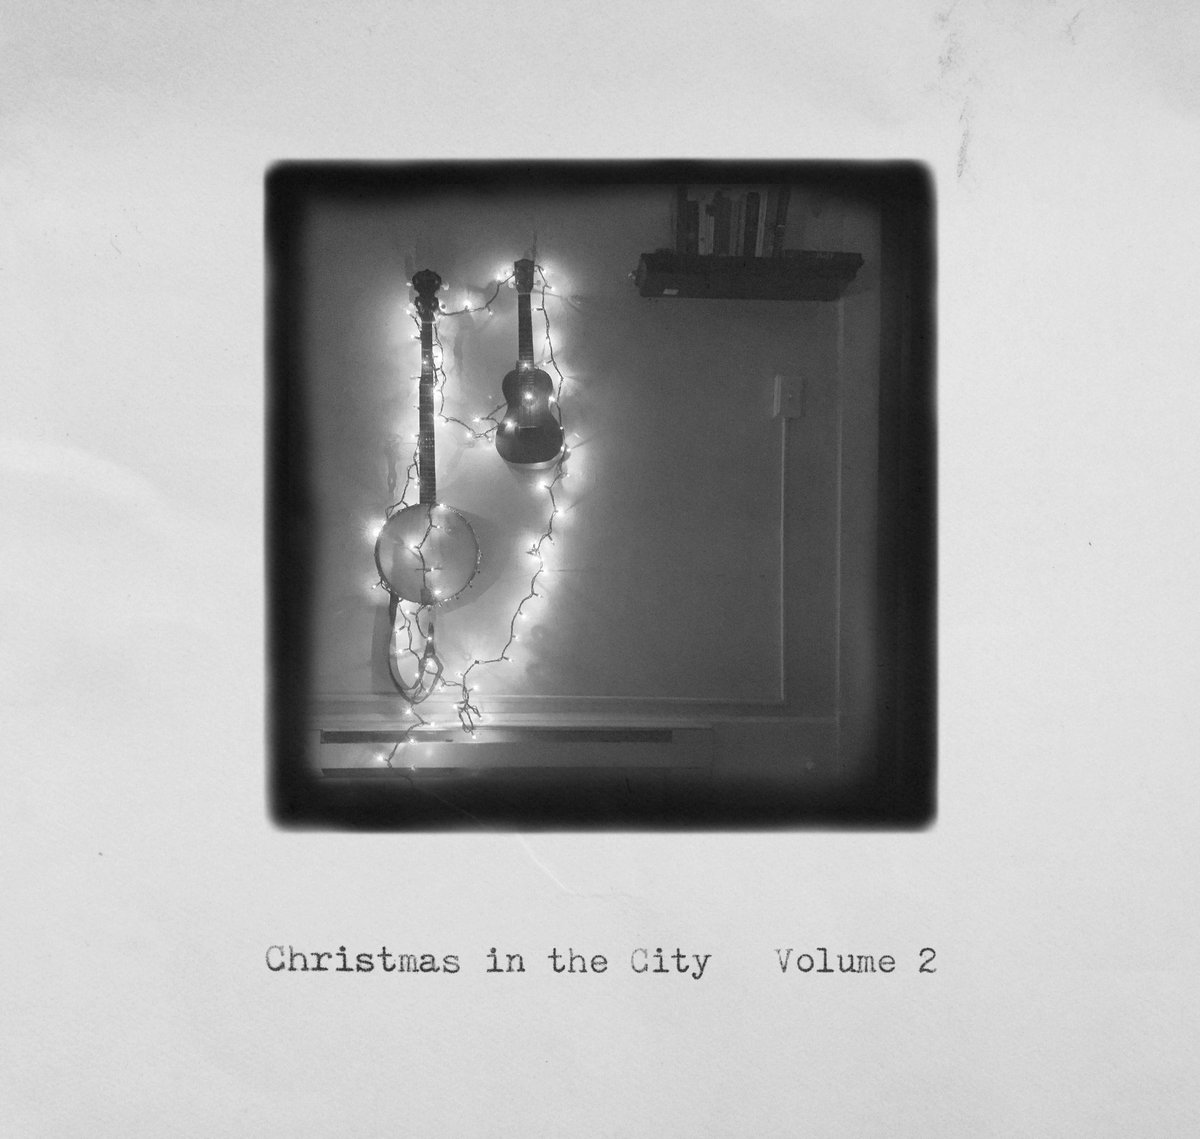 Various Artists - Christmas in the City Vol. 2 @ 'Christmas in the City Vol. 2' album (11th ave records, 11thaverecords 11th avenue)